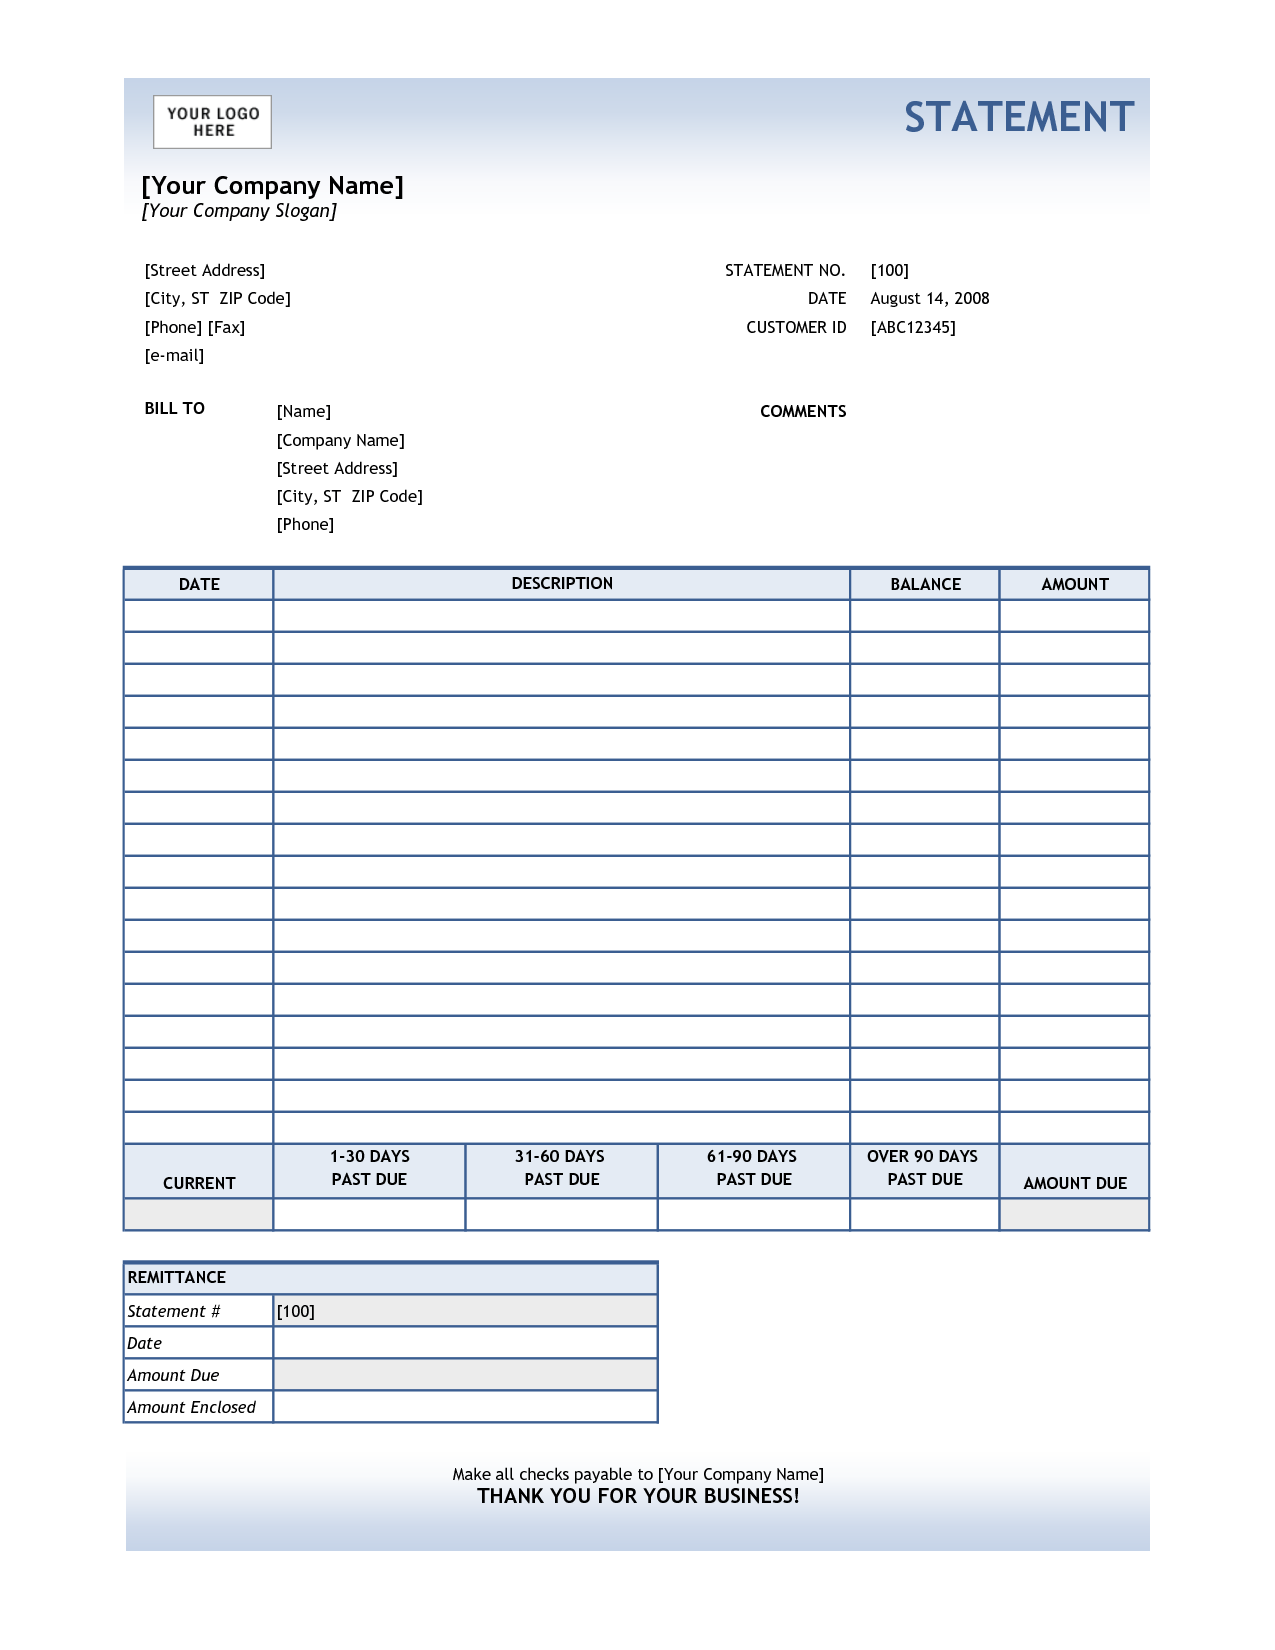 Example Of Billing Statement and Billing Statement Template with Blue Tables by Ronviers36 Helloalive